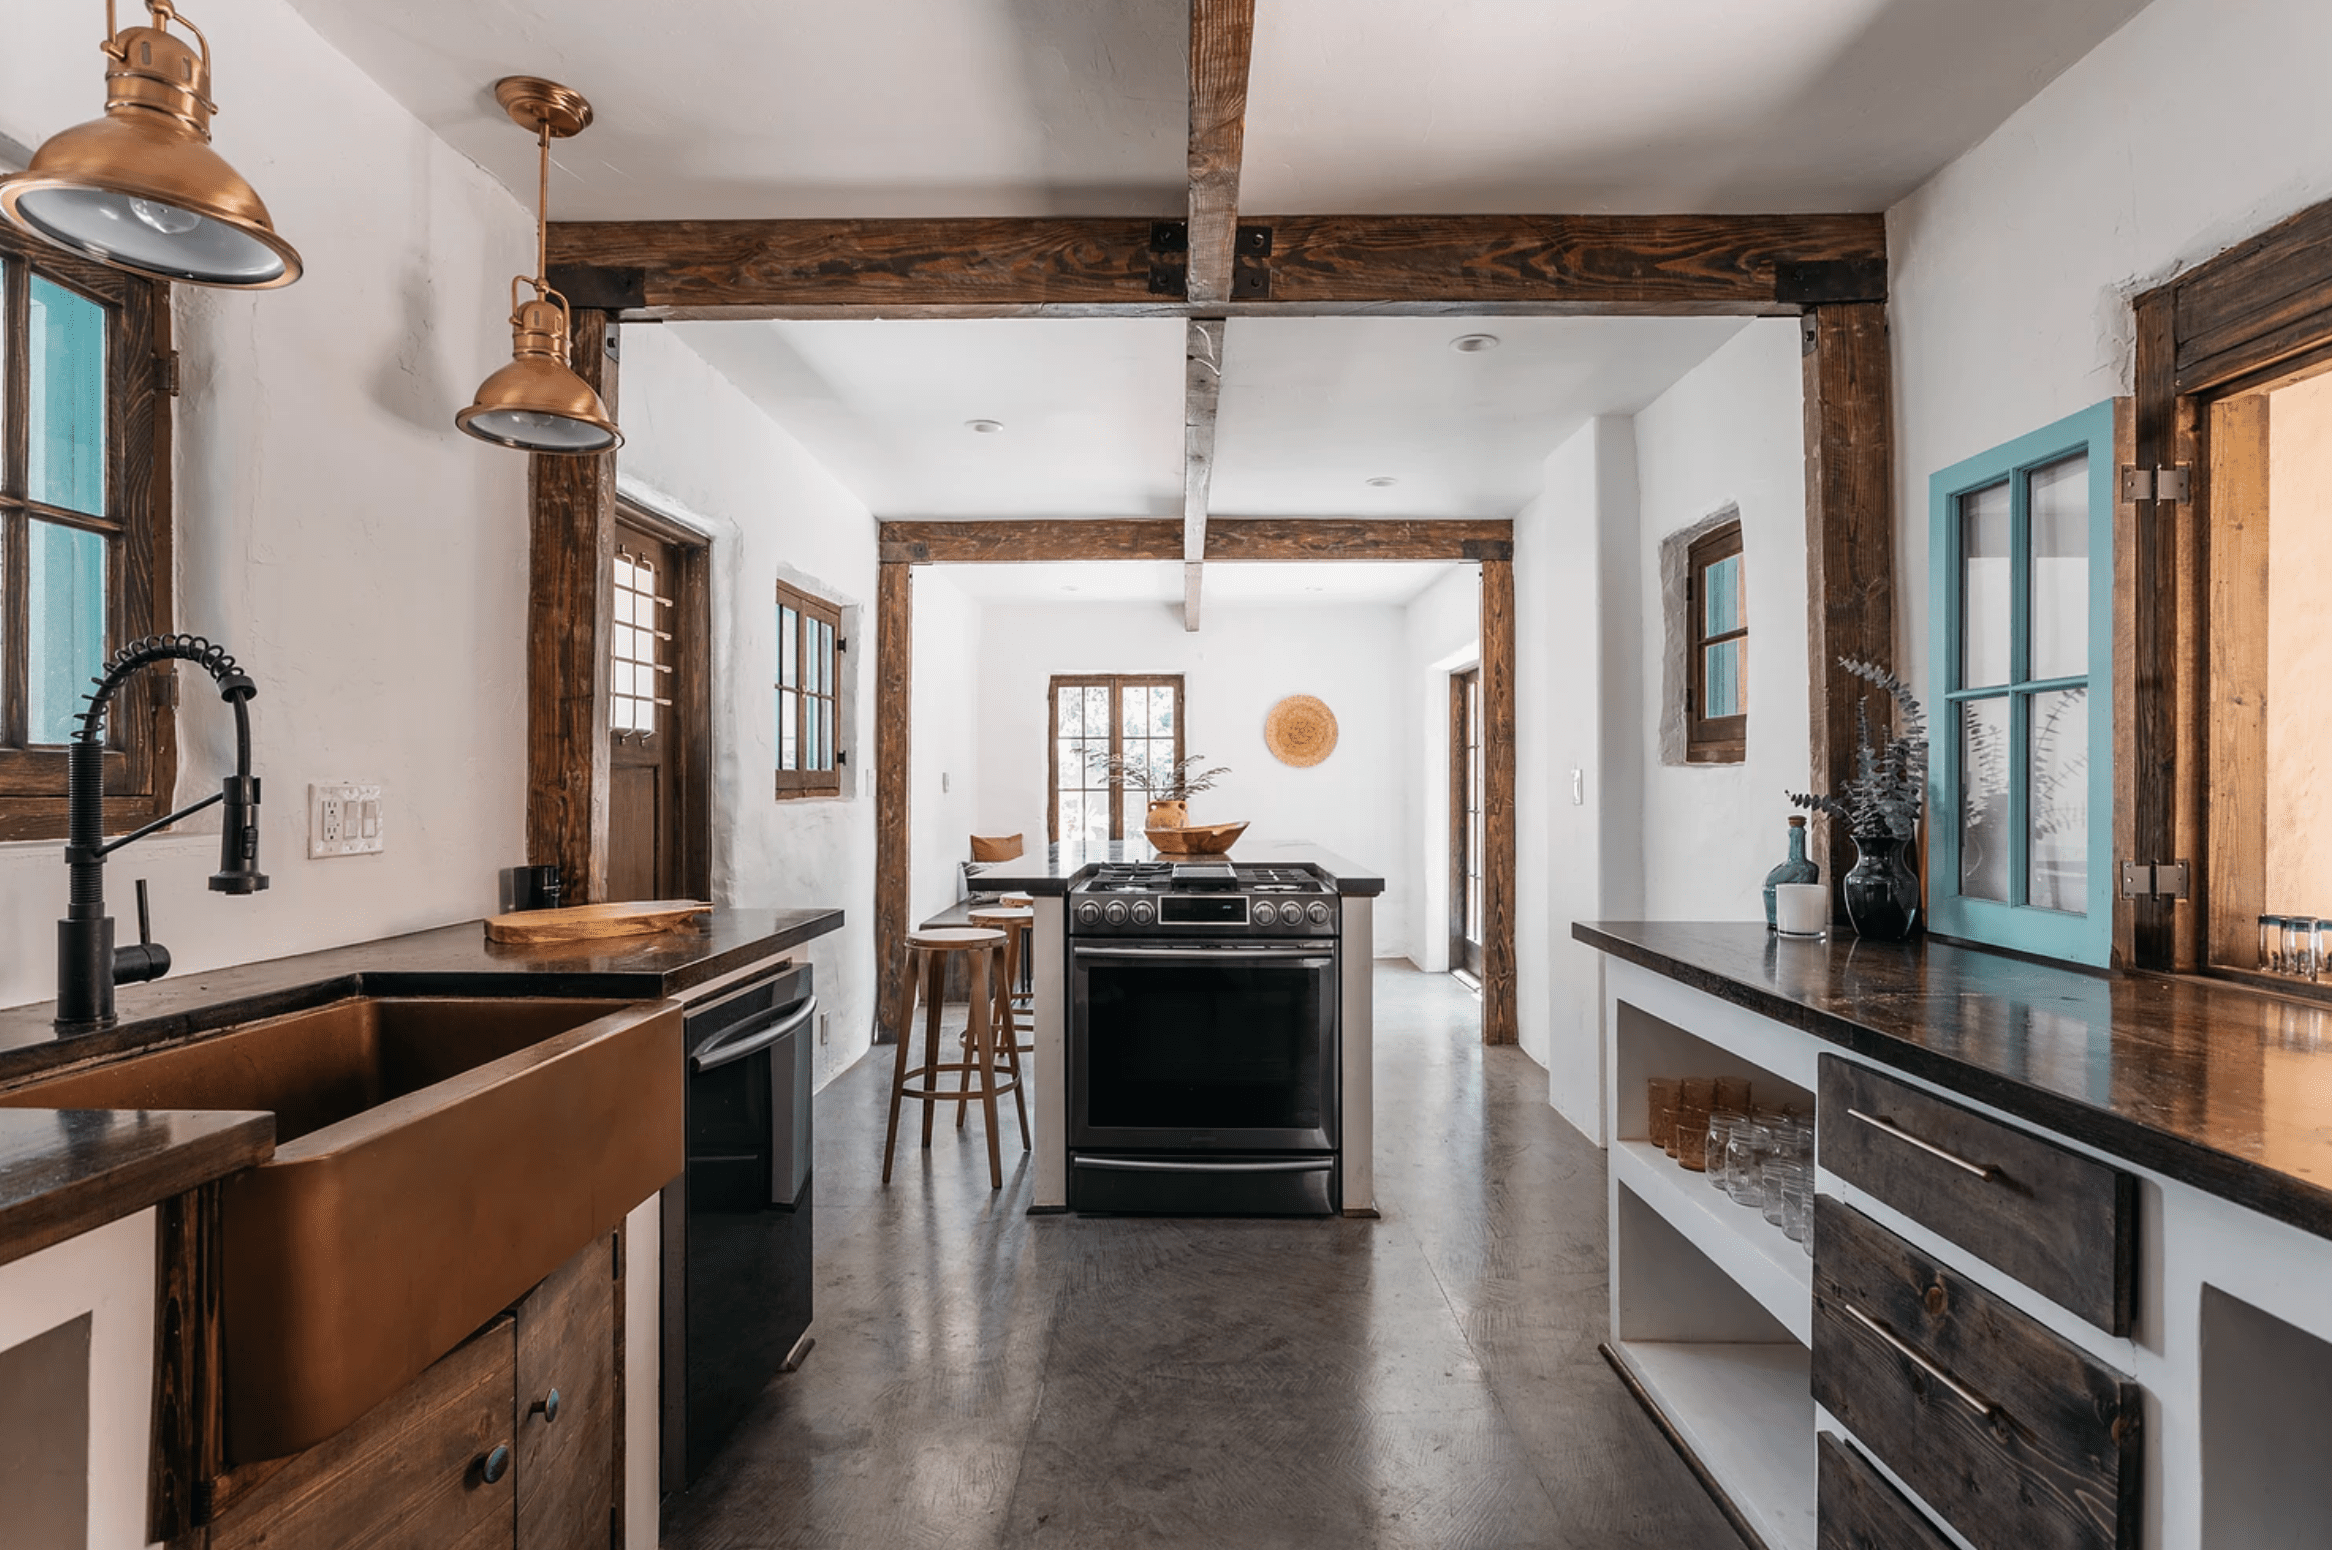 An open-concept kitchen with exposed wood beams and cement floors